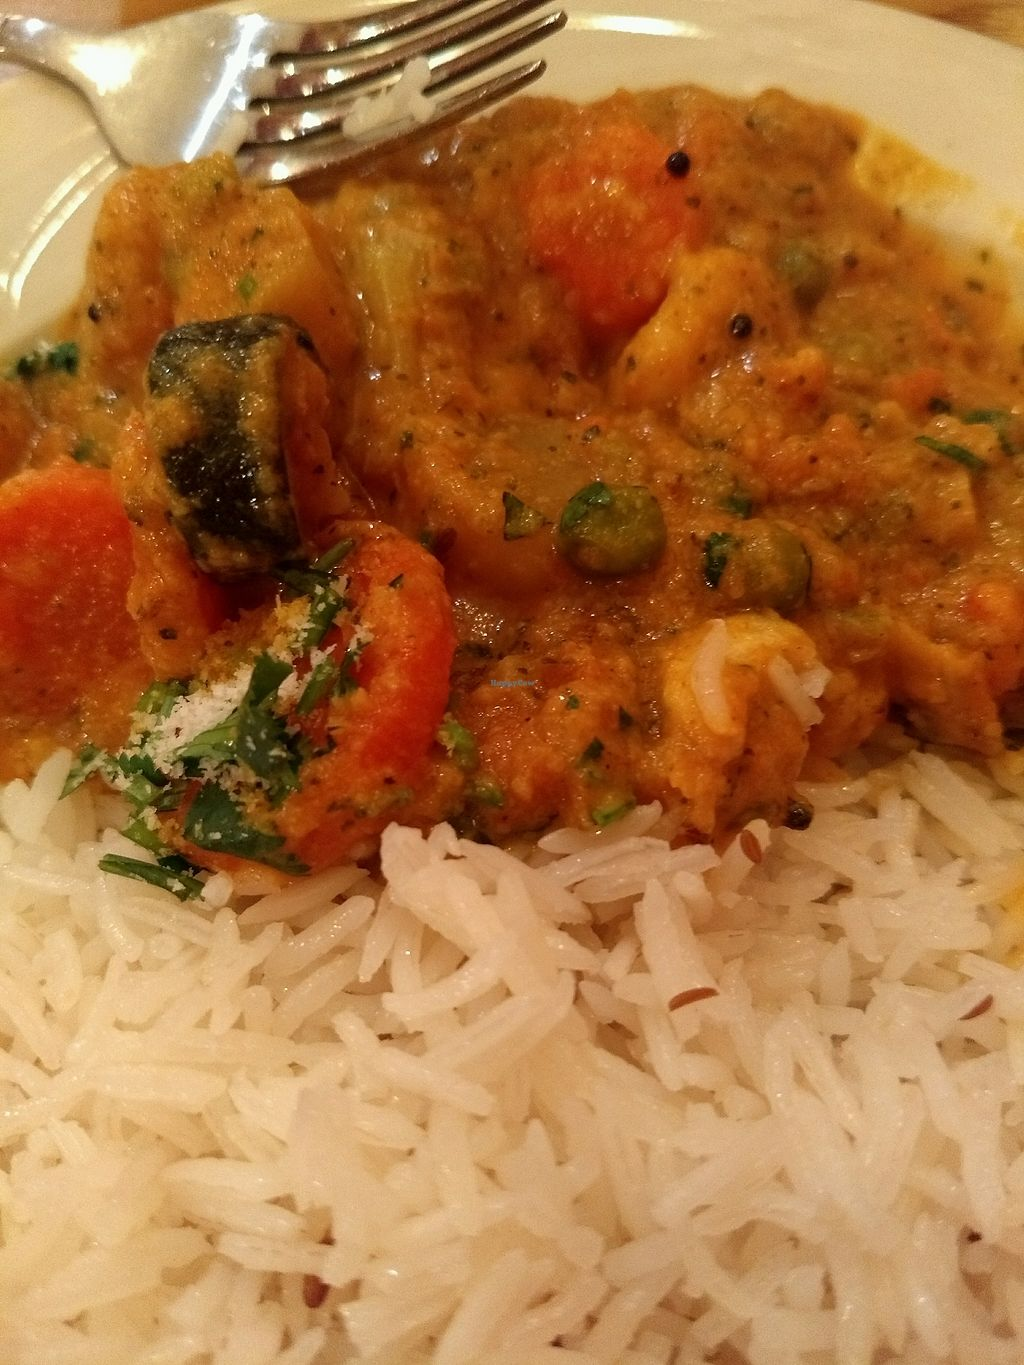 """Photo of Taste of India  by <a href=""""/members/profile/Ty%21"""">Ty!</a> <br/>Some sort of curry with long grain rice <br/> February 24, 2018  - <a href='/contact/abuse/image/36412/363025'>Report</a>"""